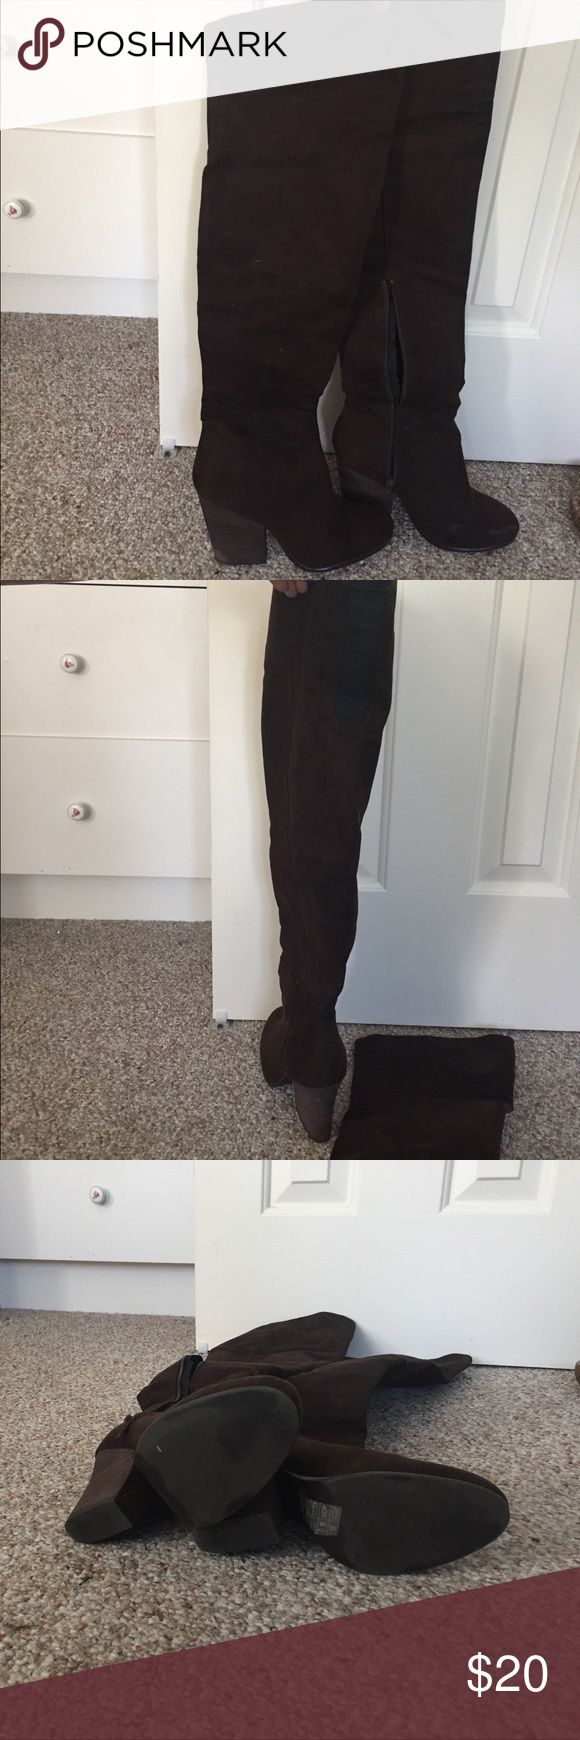 H&M THIGH HIGH BOOTS - only worn once! Deep brown thigh high boots. Elastic band on top to stretch to calf size. Heel 1 inch with striped detail. Very comfy! Only worn once! H&M Shoes Over the Knee Boots